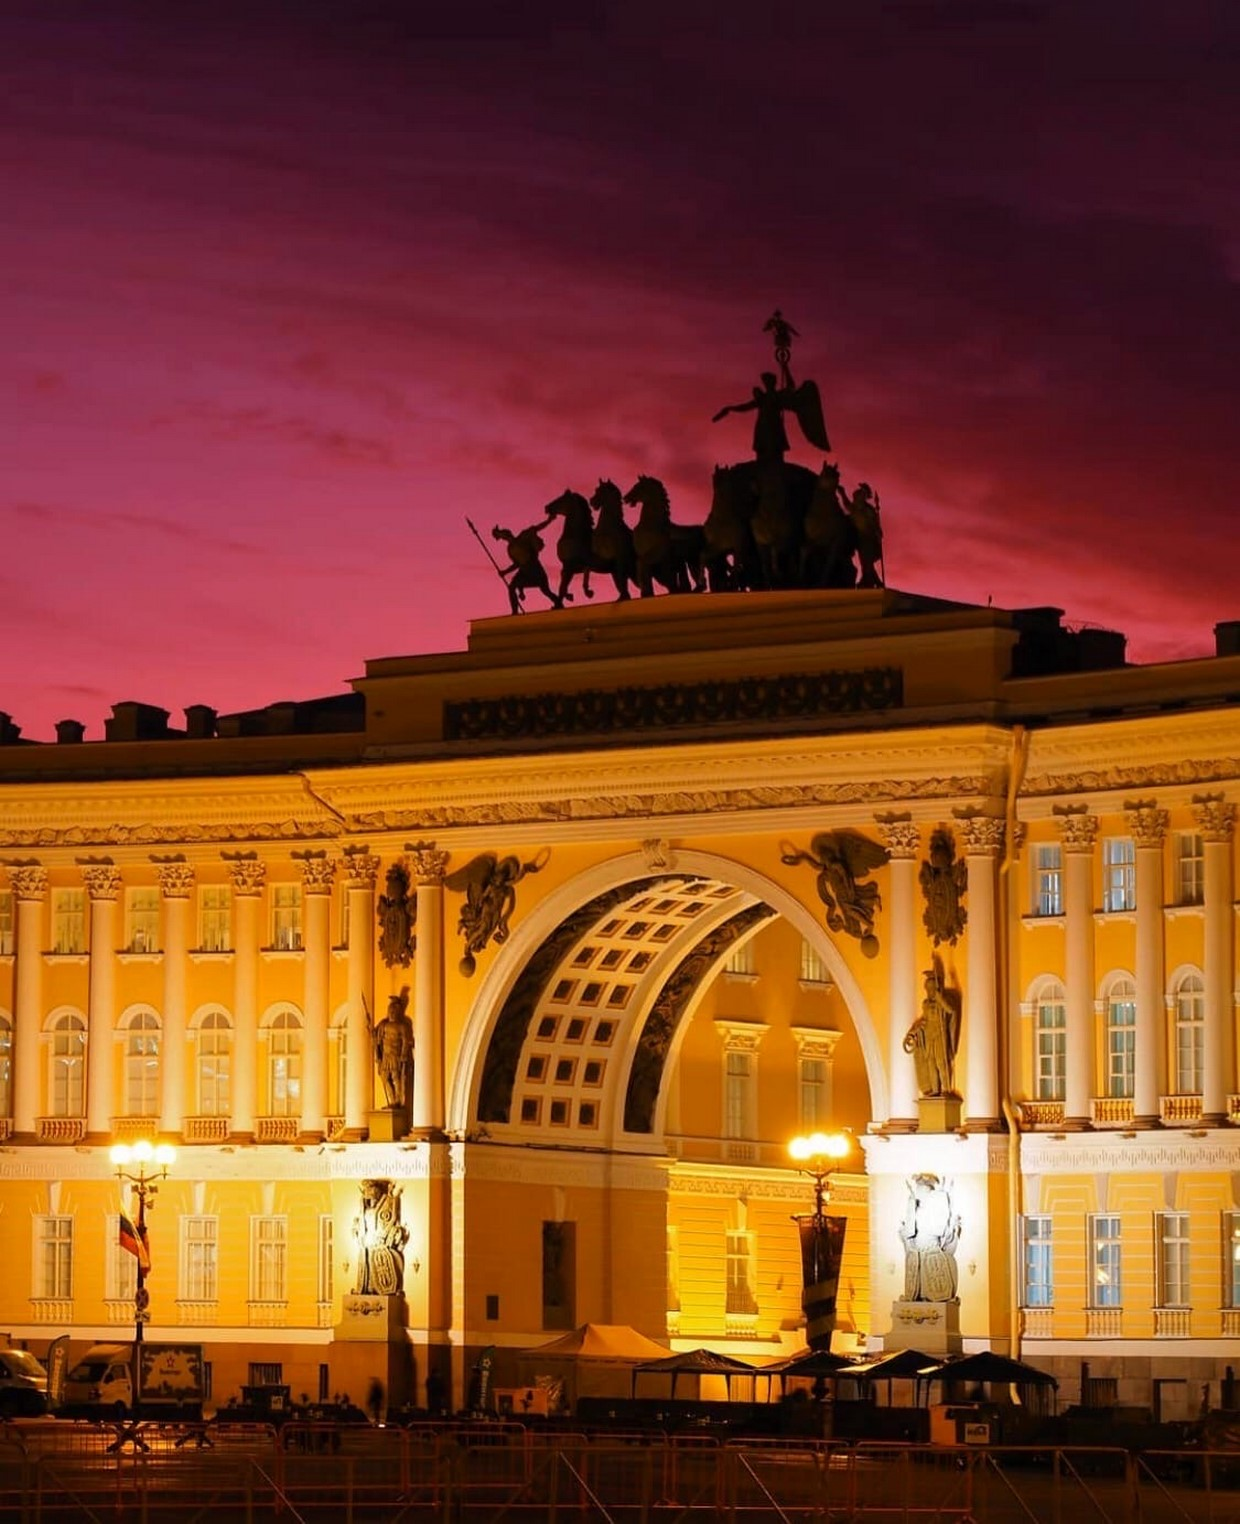 3 Day Shore Excursion of St. Petersburg Tour - Moderate 9